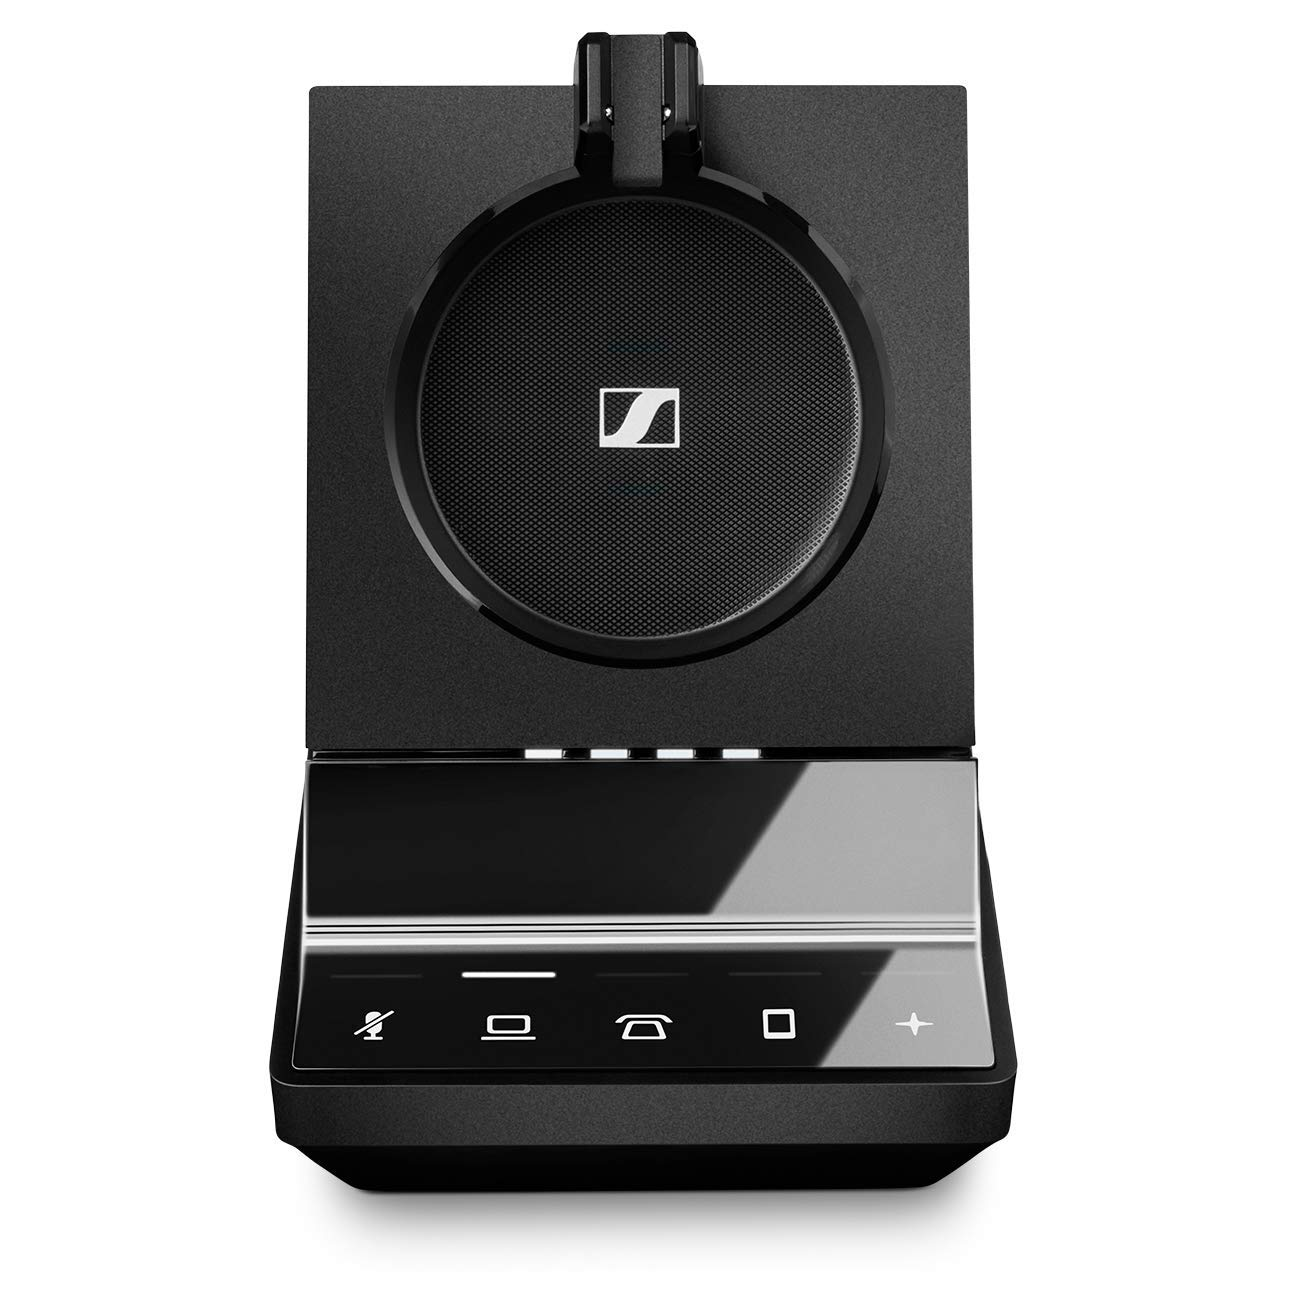 Sennheiser SDW 5036 (507020) - Single-Sided (Monaural) Wireless Dect Headset for Desk Phone Softphone/PC & Mobile Phone Connection Dual Microphone Ultra Noise Cancelling, Black by Sennheiser Enterprise Solution (Image #4)